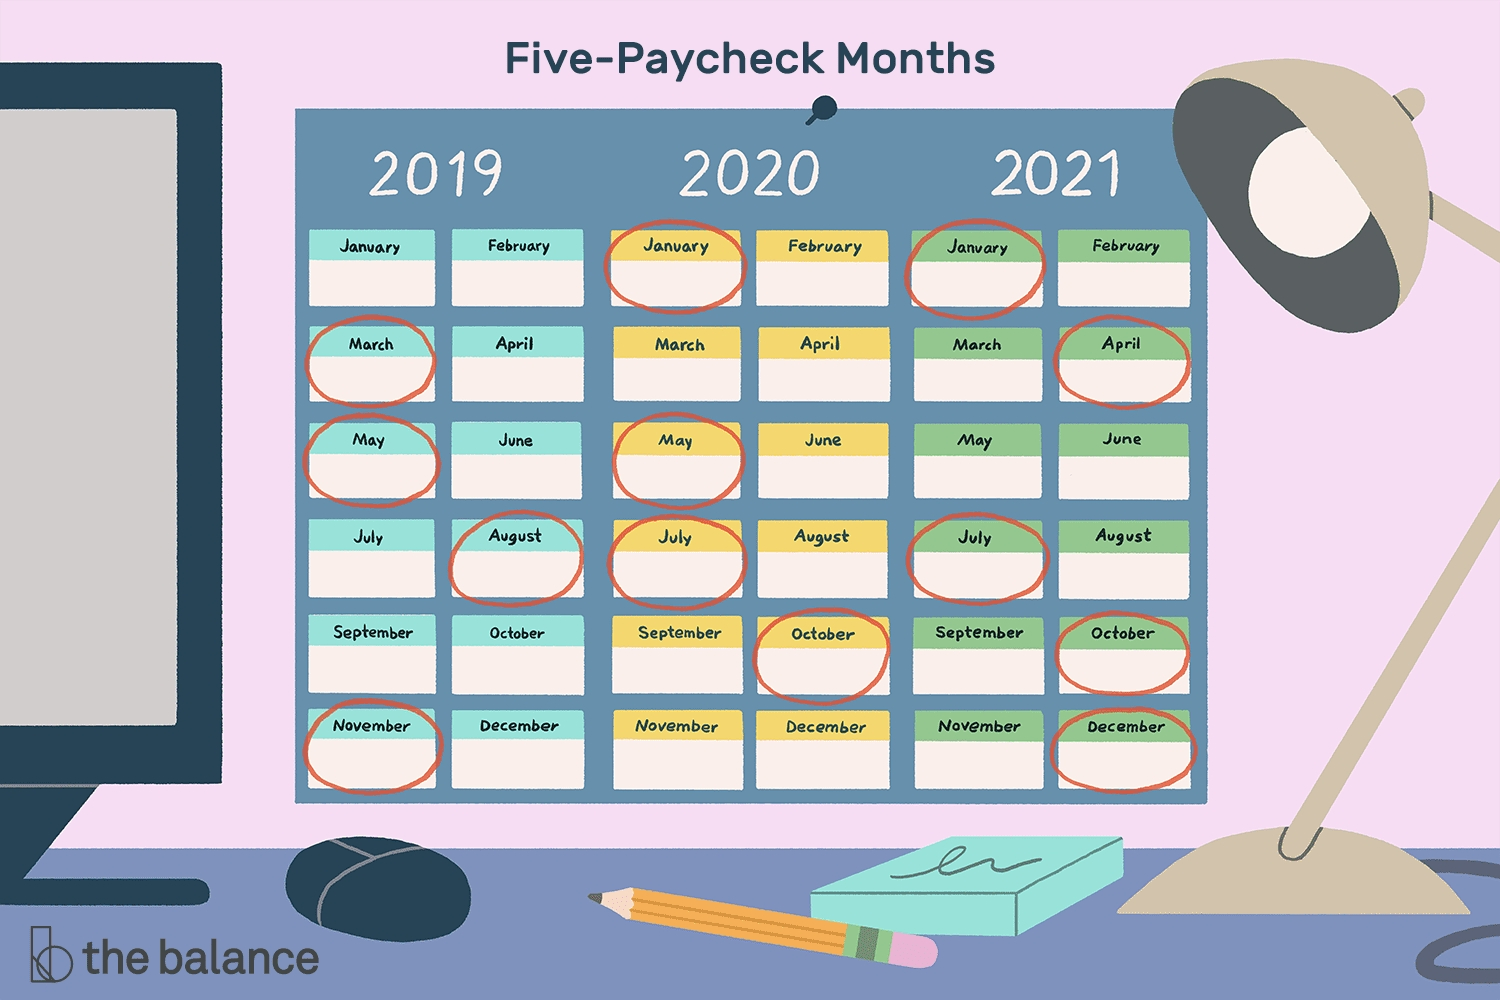 Months In Which You Receive 5 Paychecks From 2020-2029